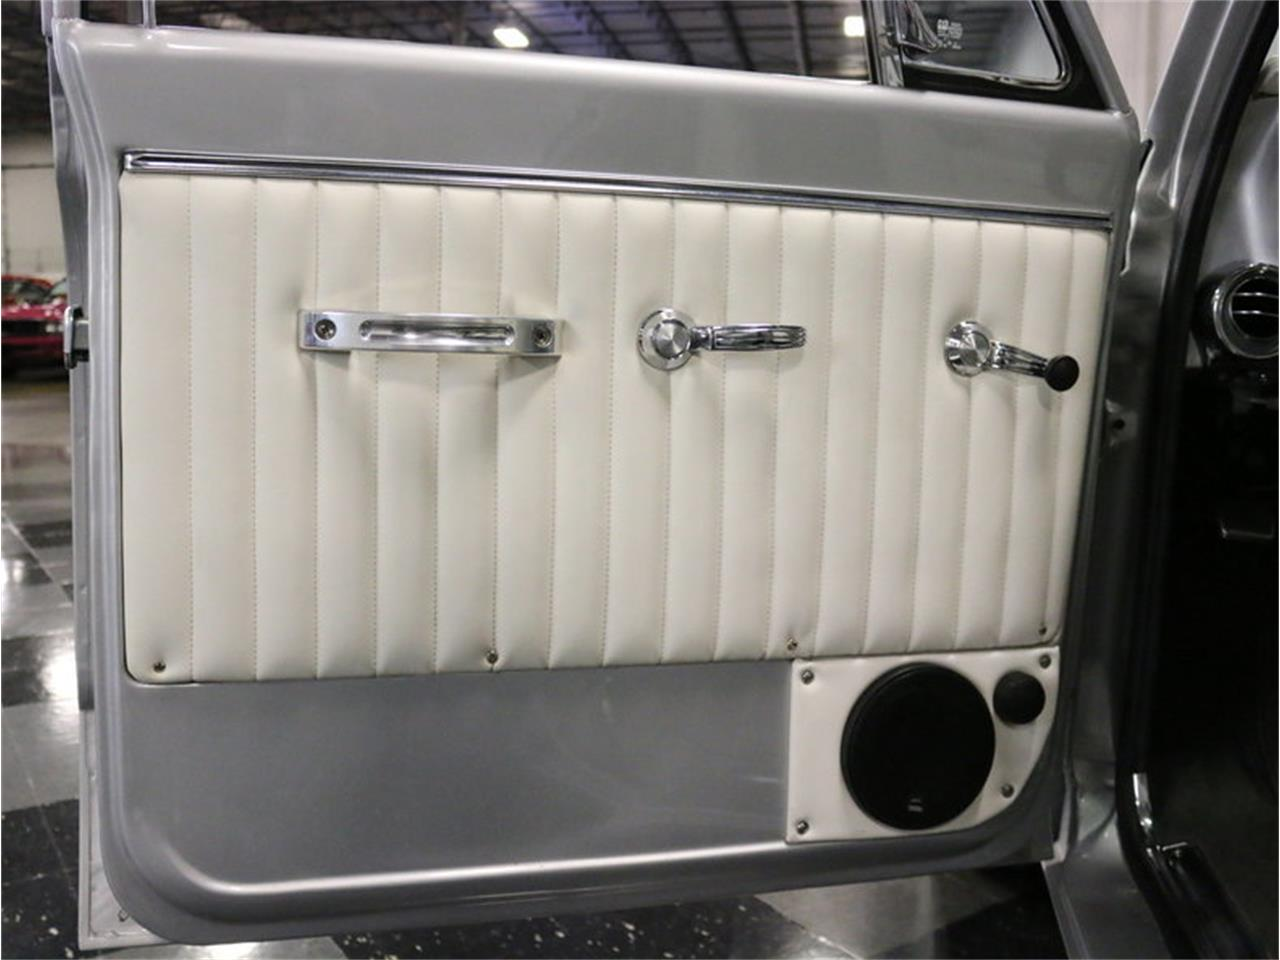 Large Picture of Classic '71 GMC Suburban located in Ft Worth Texas Offered by Streetside Classics - Dallas / Fort Worth - MOA7